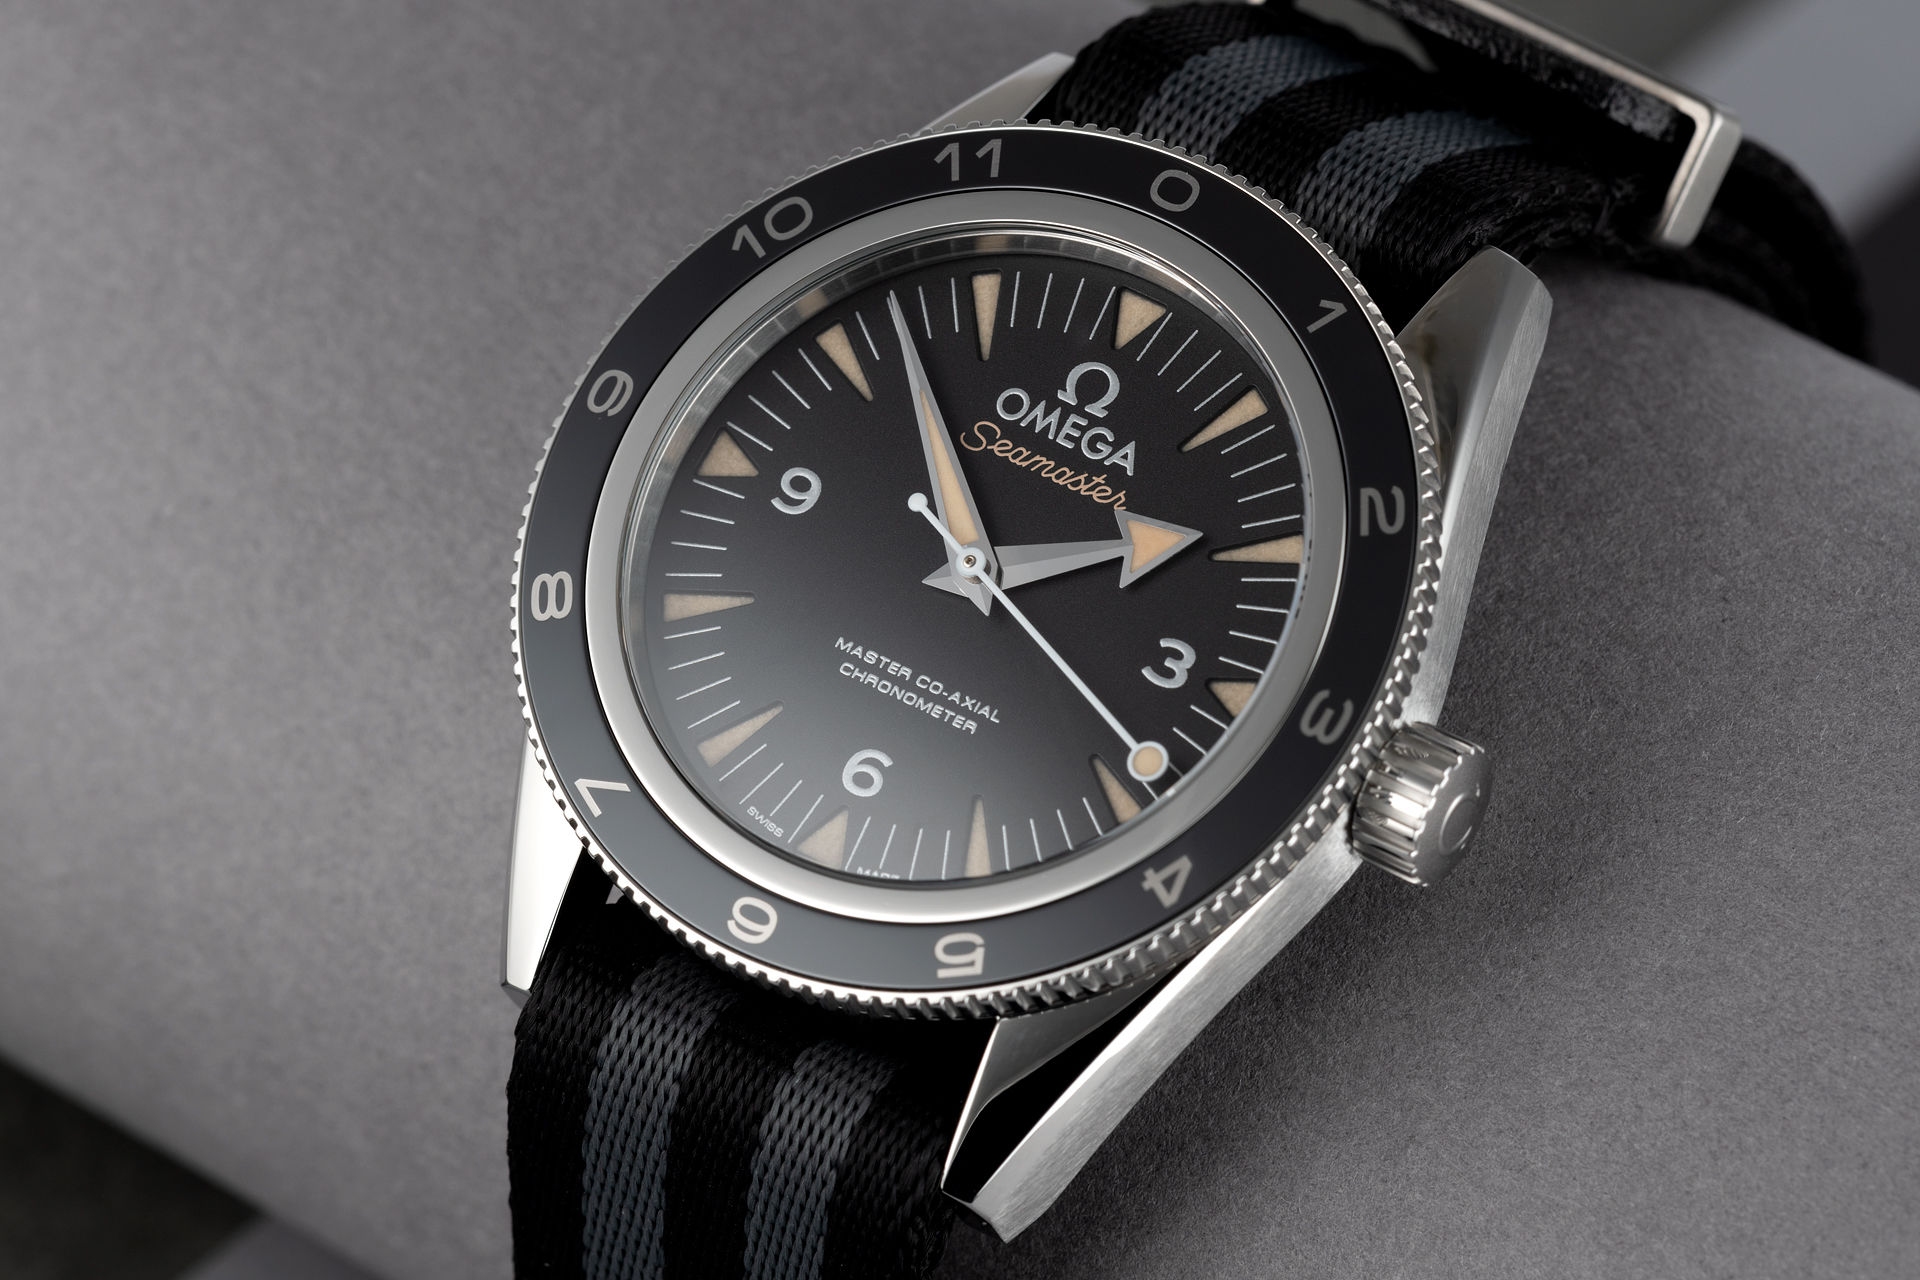 ref 233.32.41.21.01.001 | Limited Edition 'Omega Warranty' | Omega Seamaster Spectre